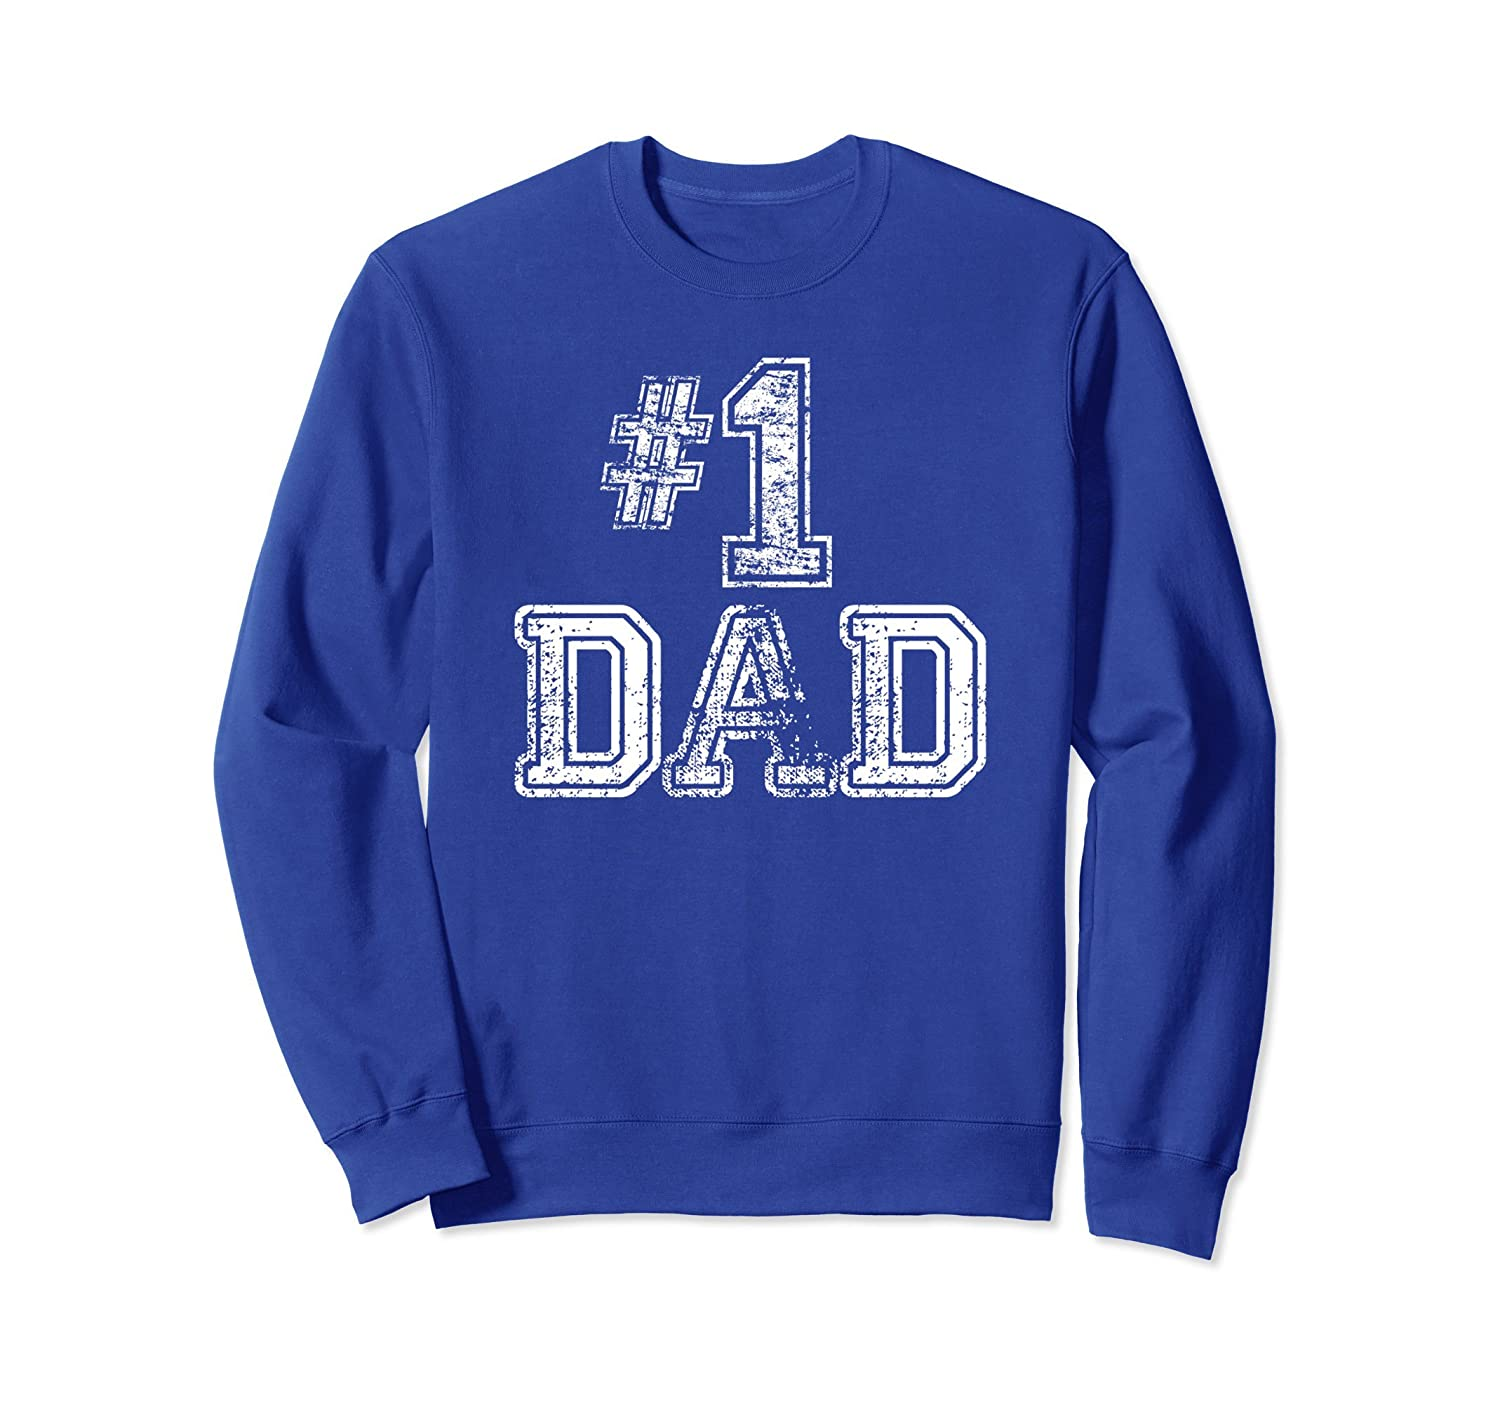 #1 Dad Sweatshirt - Number One Sports Jersey Style-ah my shirt one gift